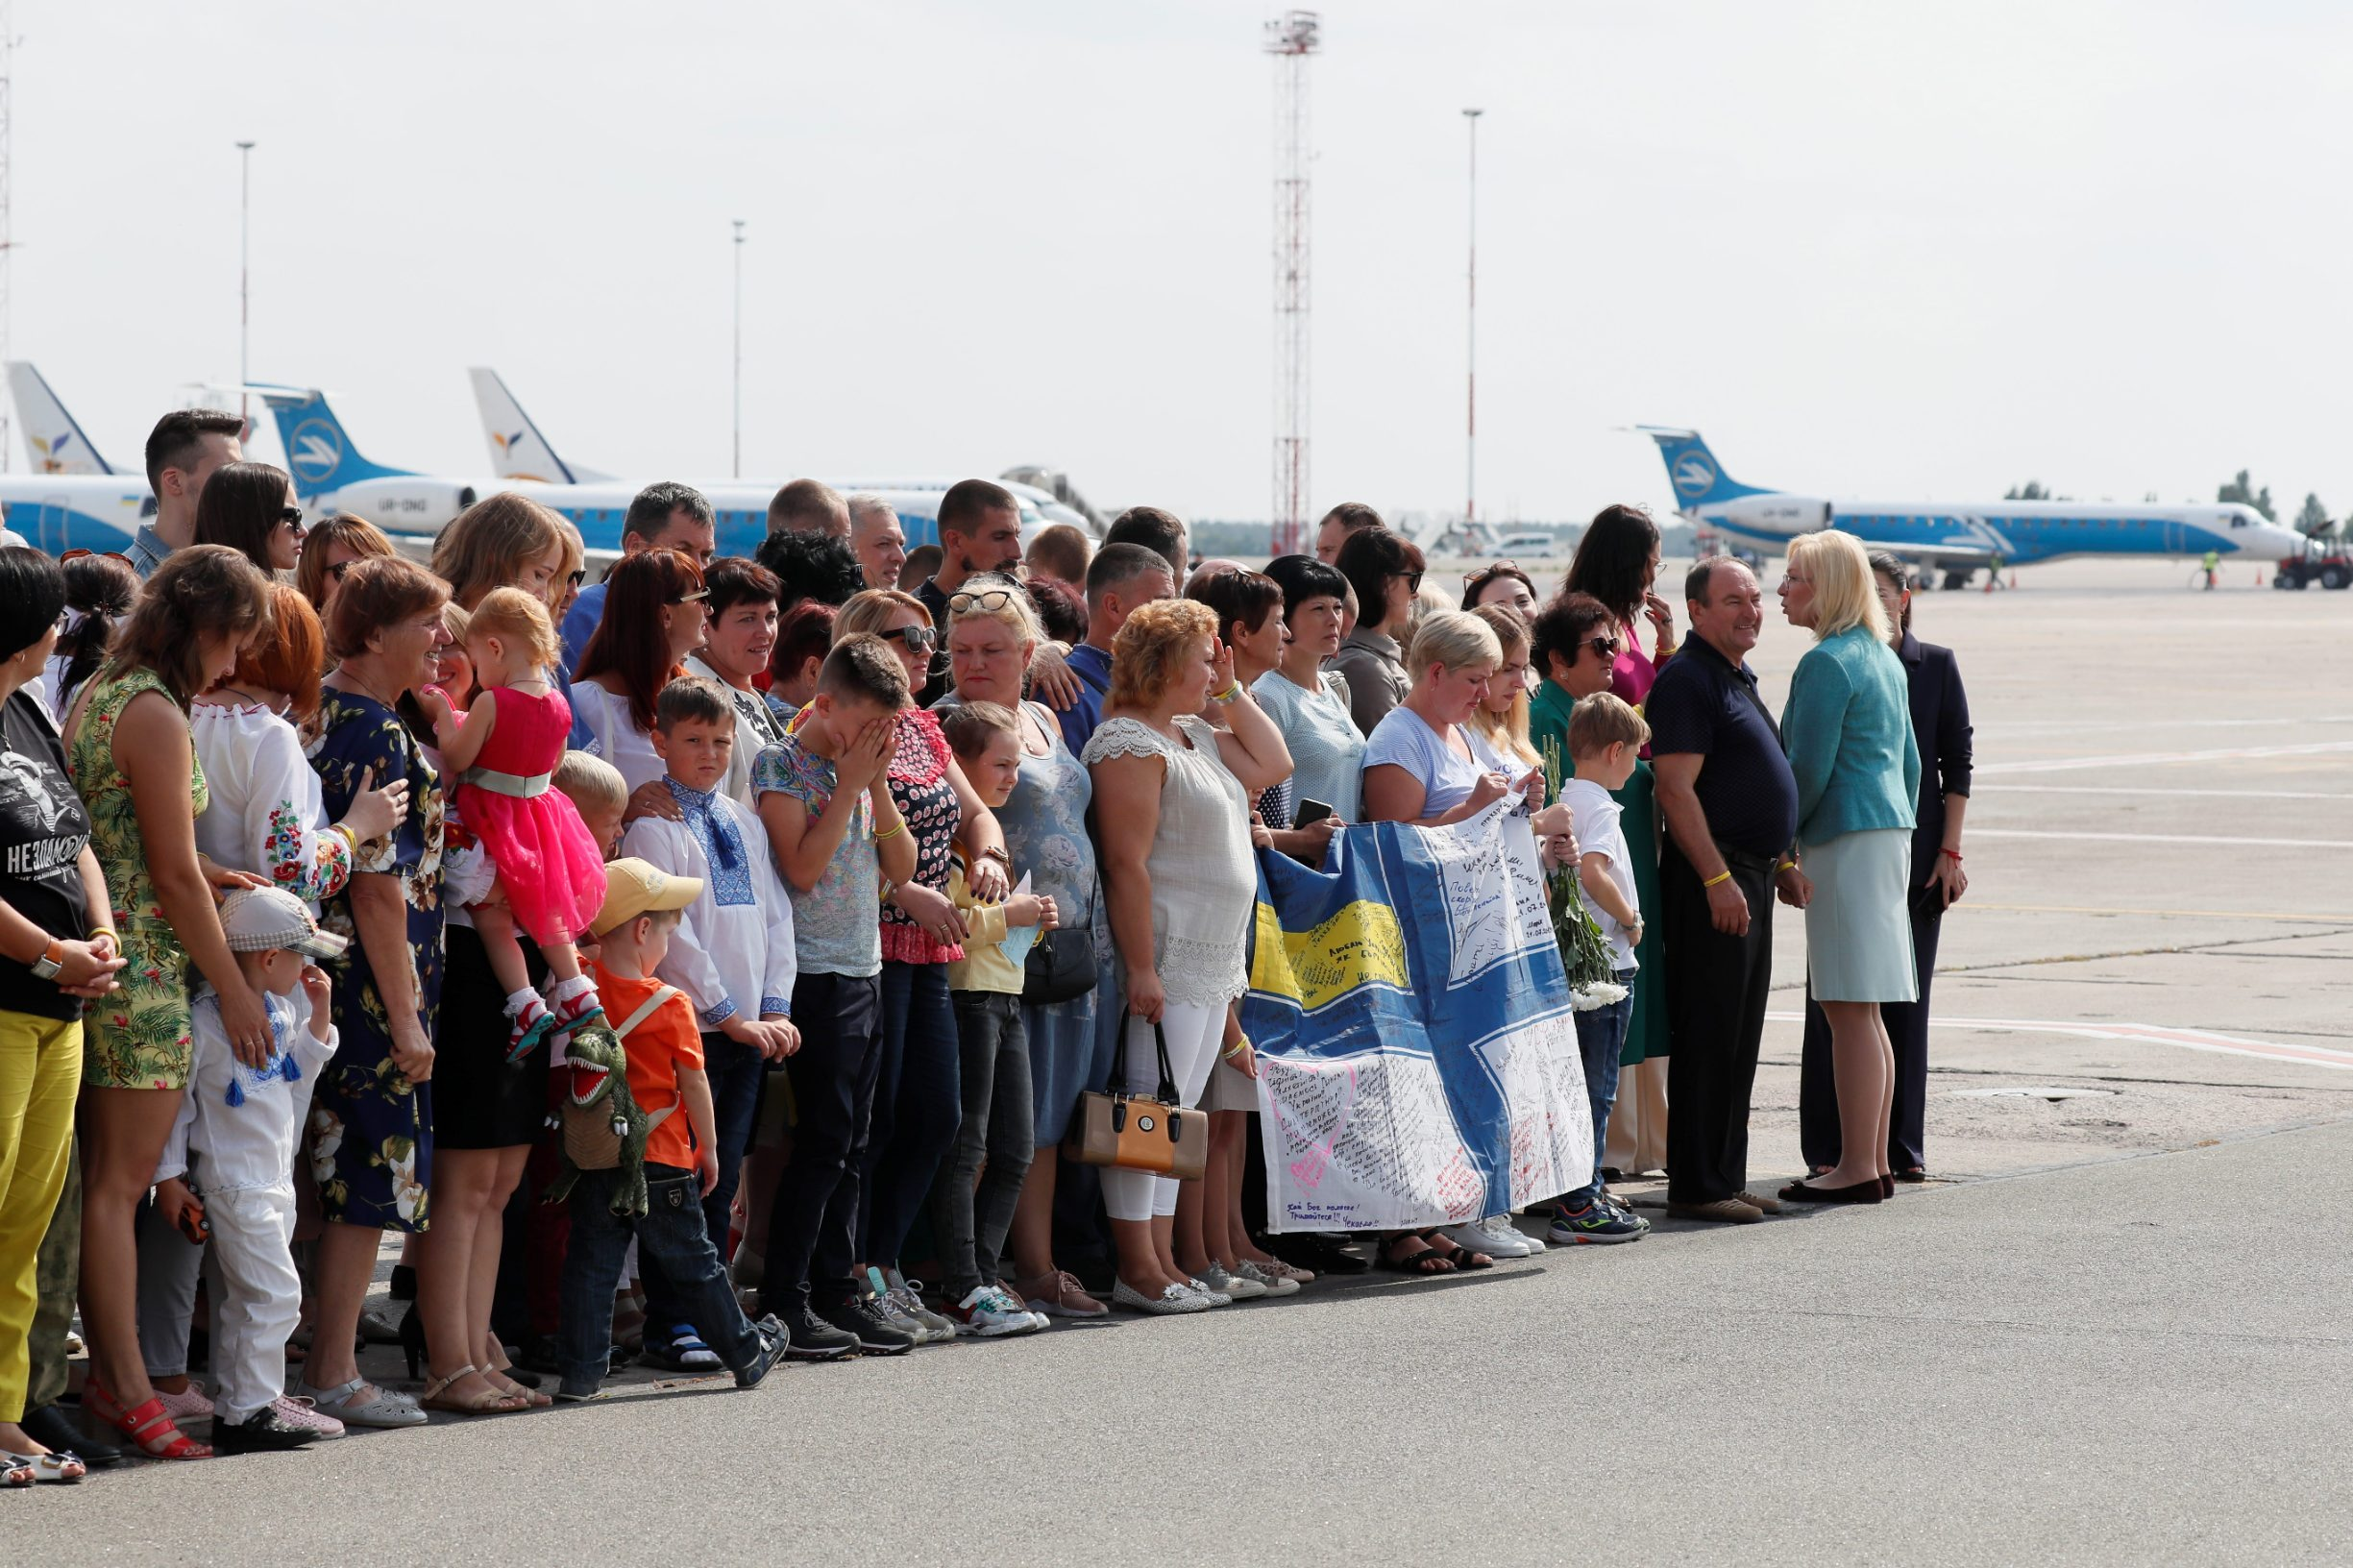 Relatives of Ukrainian prisoners, included in the Russia-Ukraine prisoner swap, wait for their arrival at Borispil International Airport outside Kiev, Ukraine September 7, 2019. REUTERS/Gleb Garanich